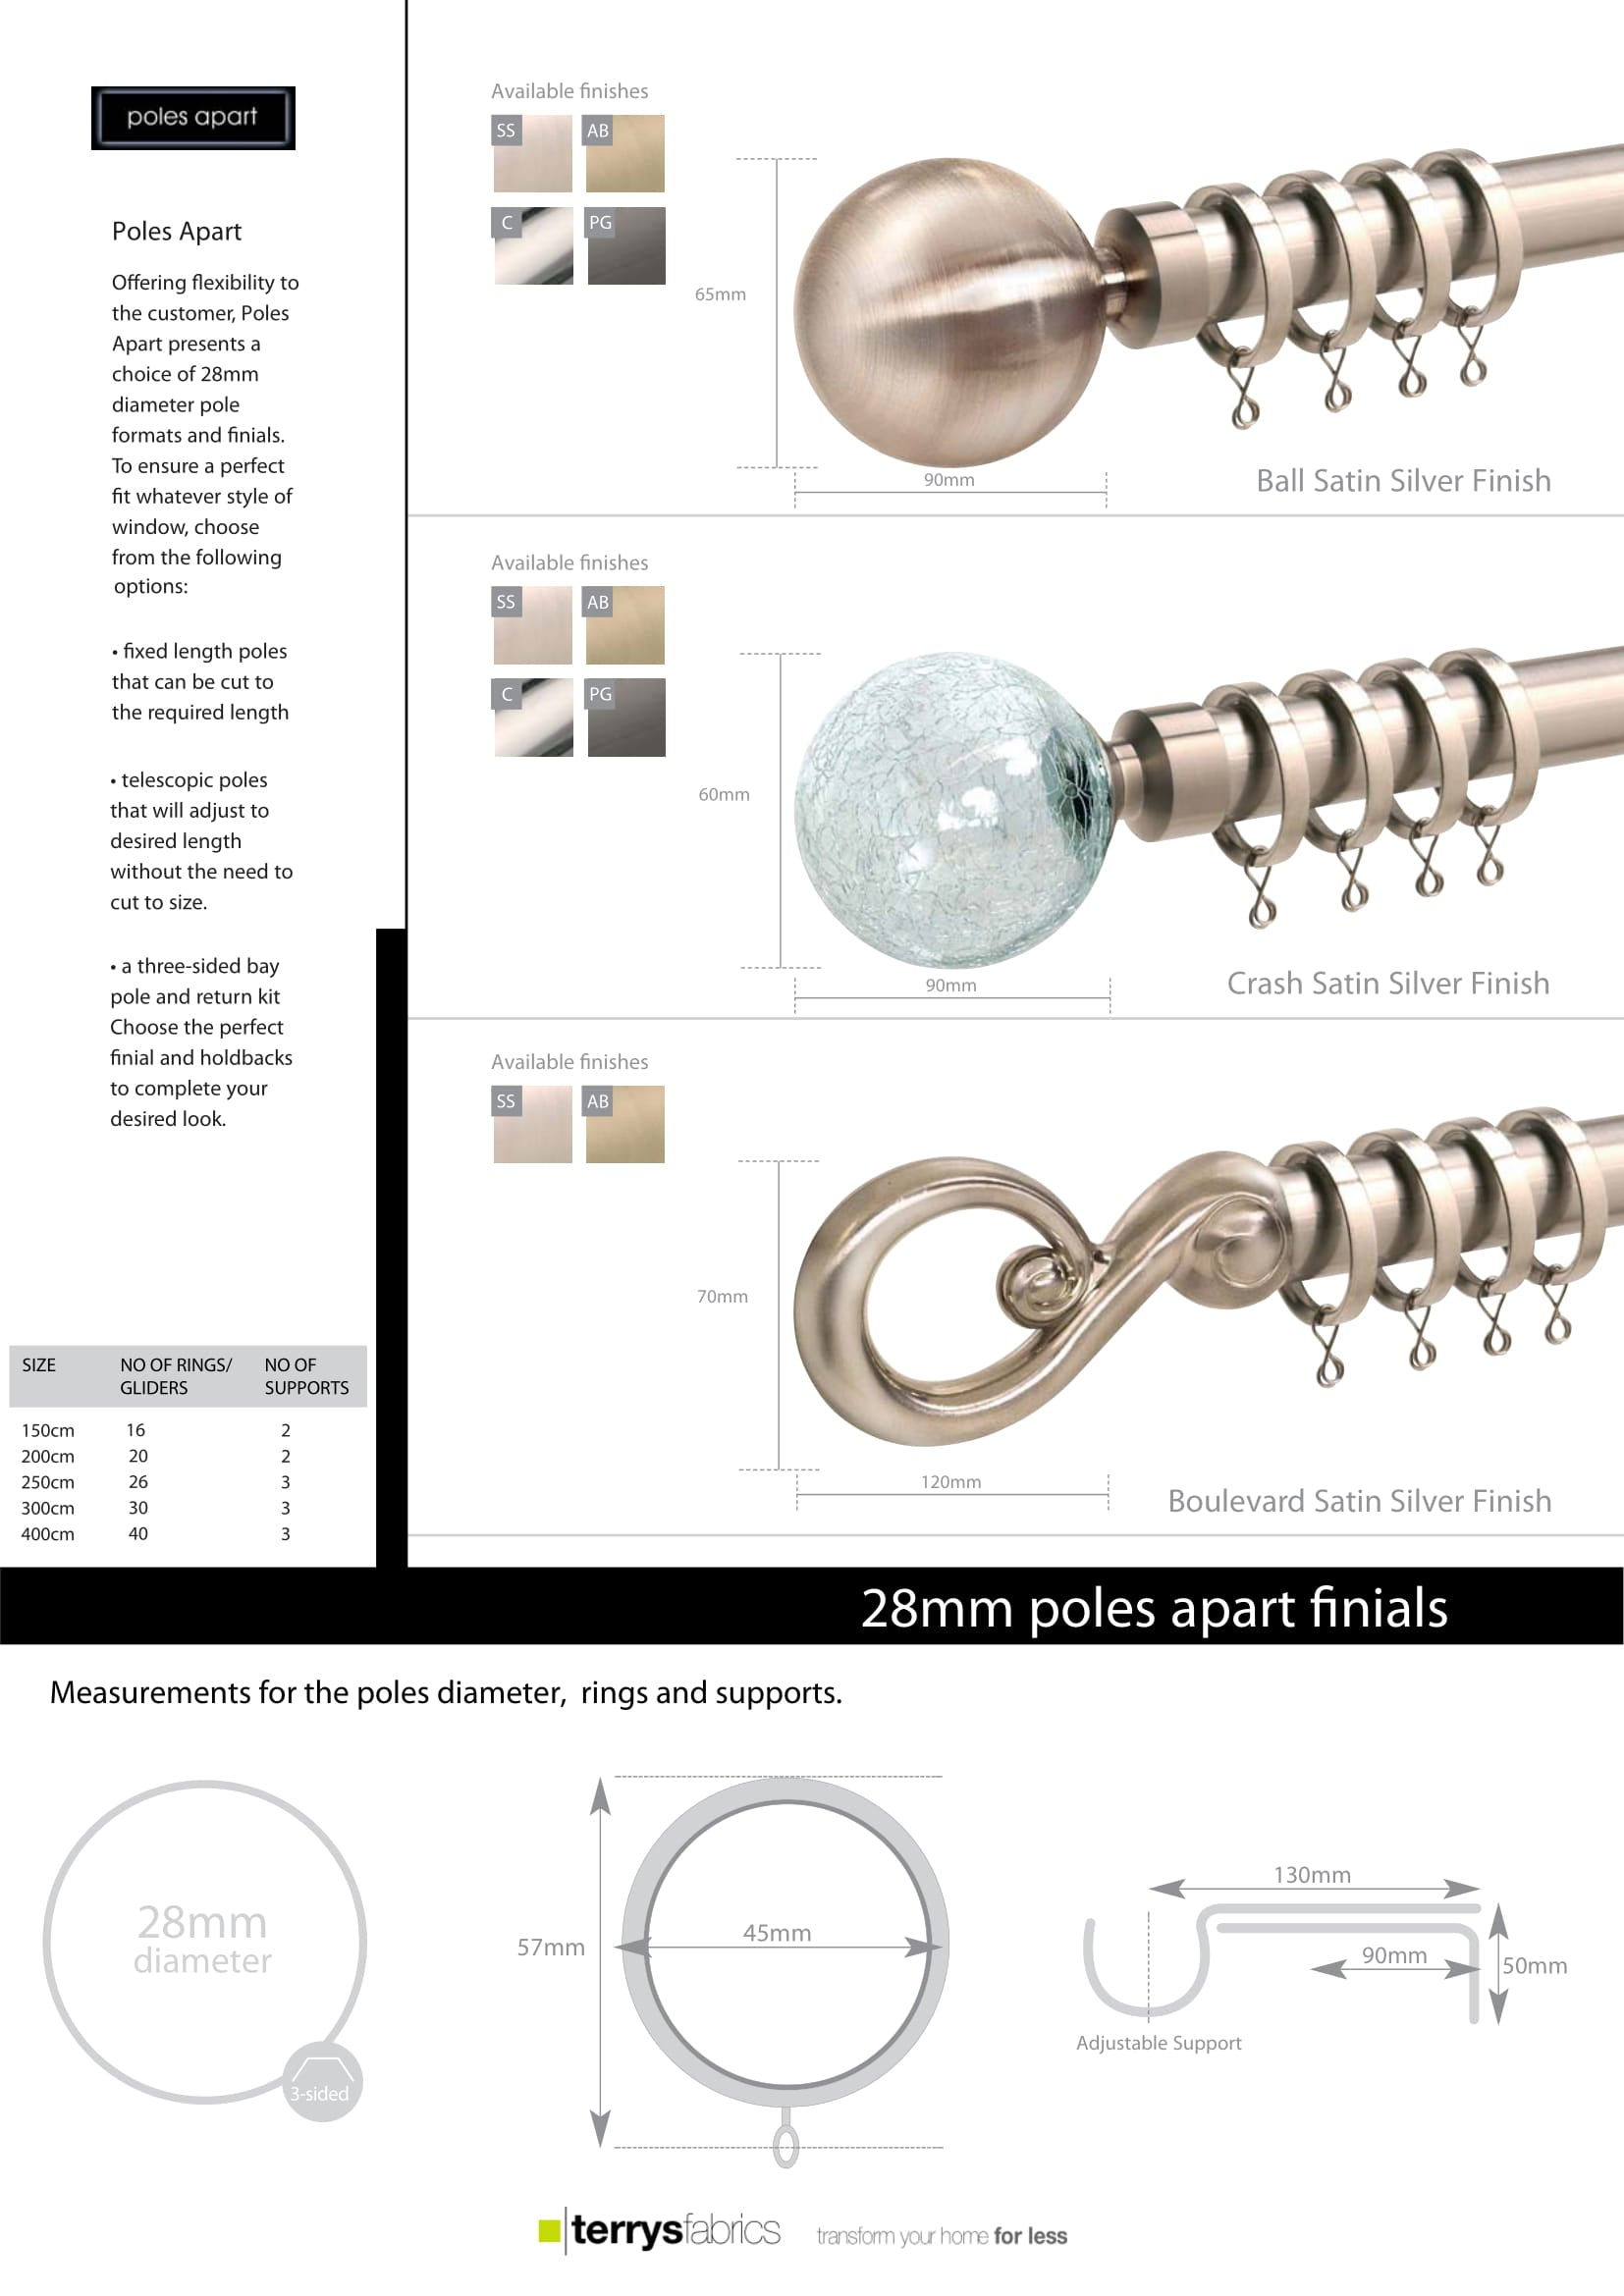 Ball Crash Boulevard Product Details And Fitting Instructions One